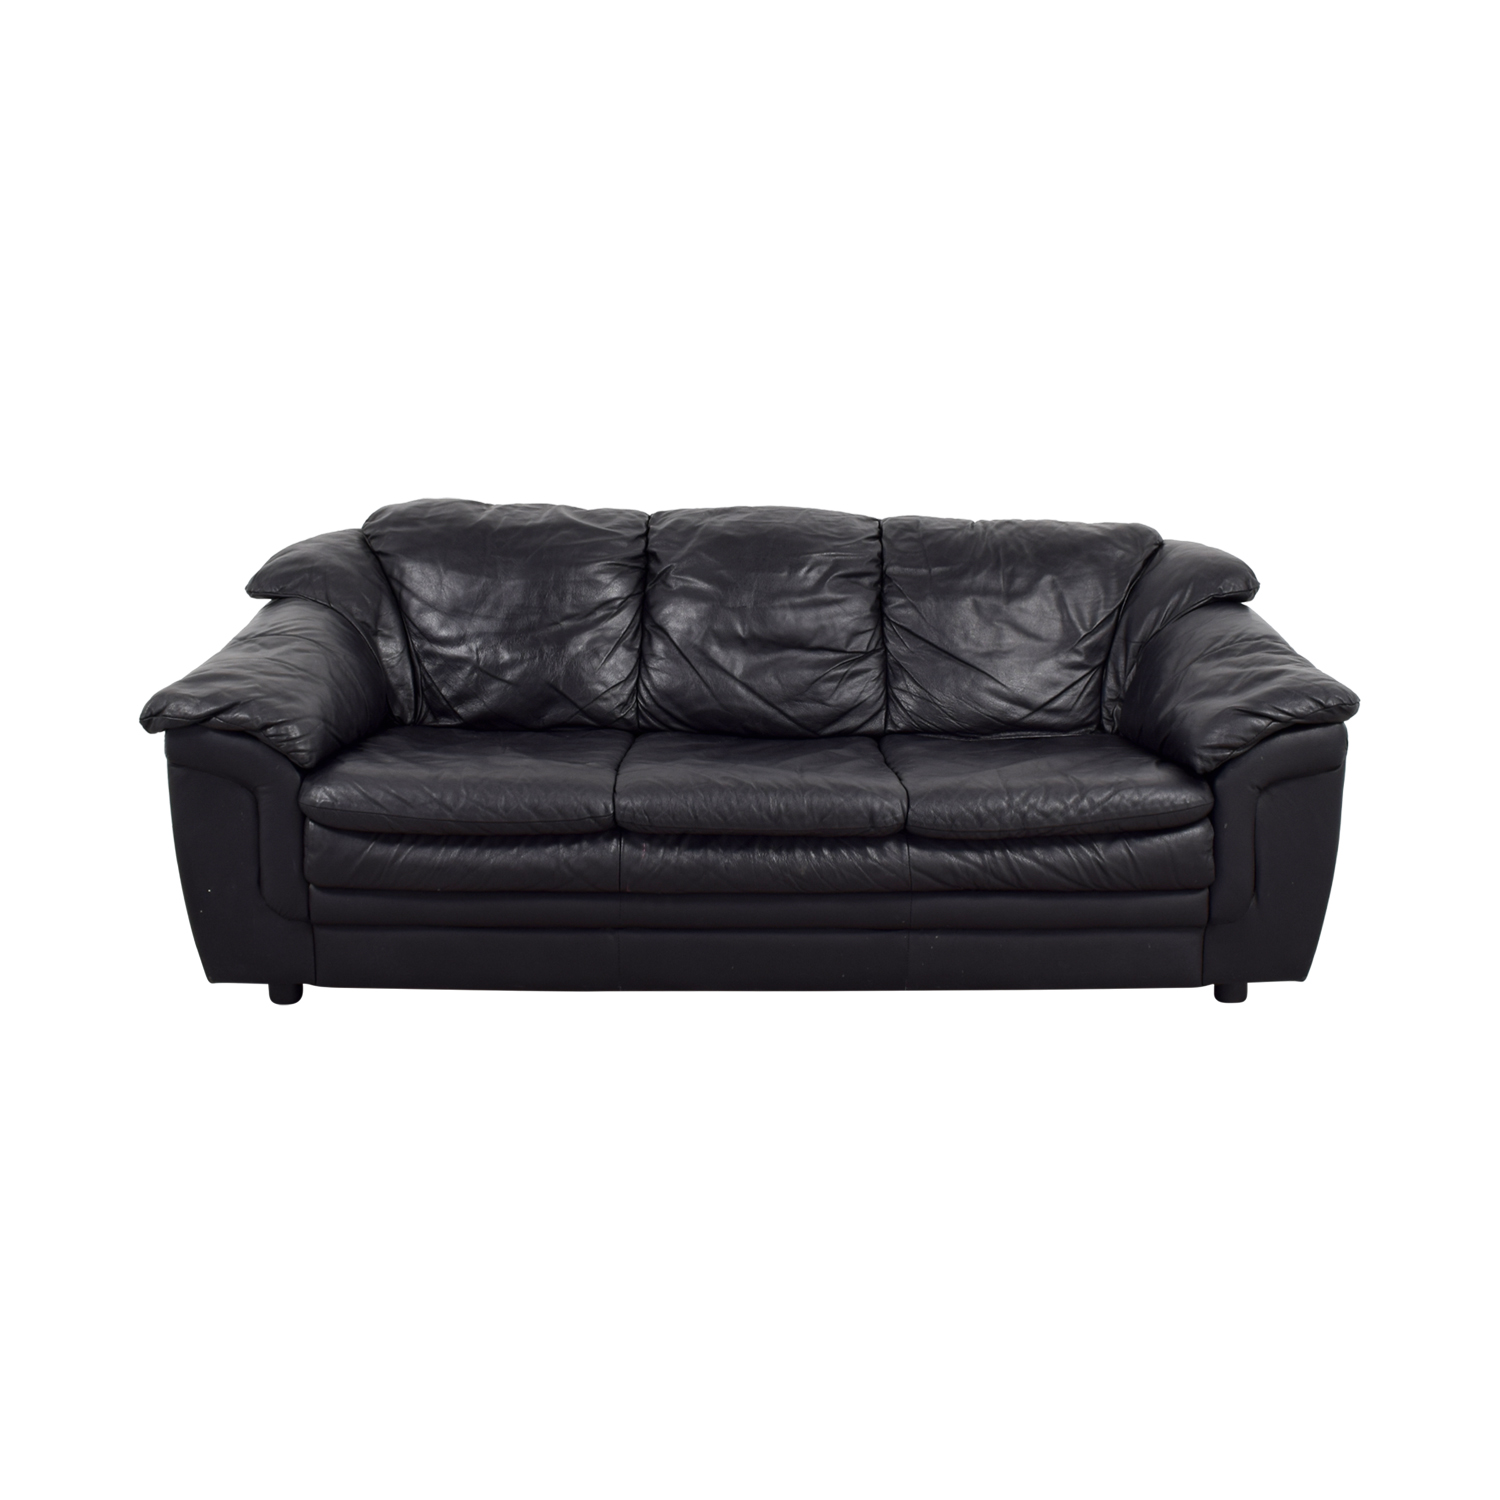 77 Off Jennifer Furniture Jennifer Leather Black